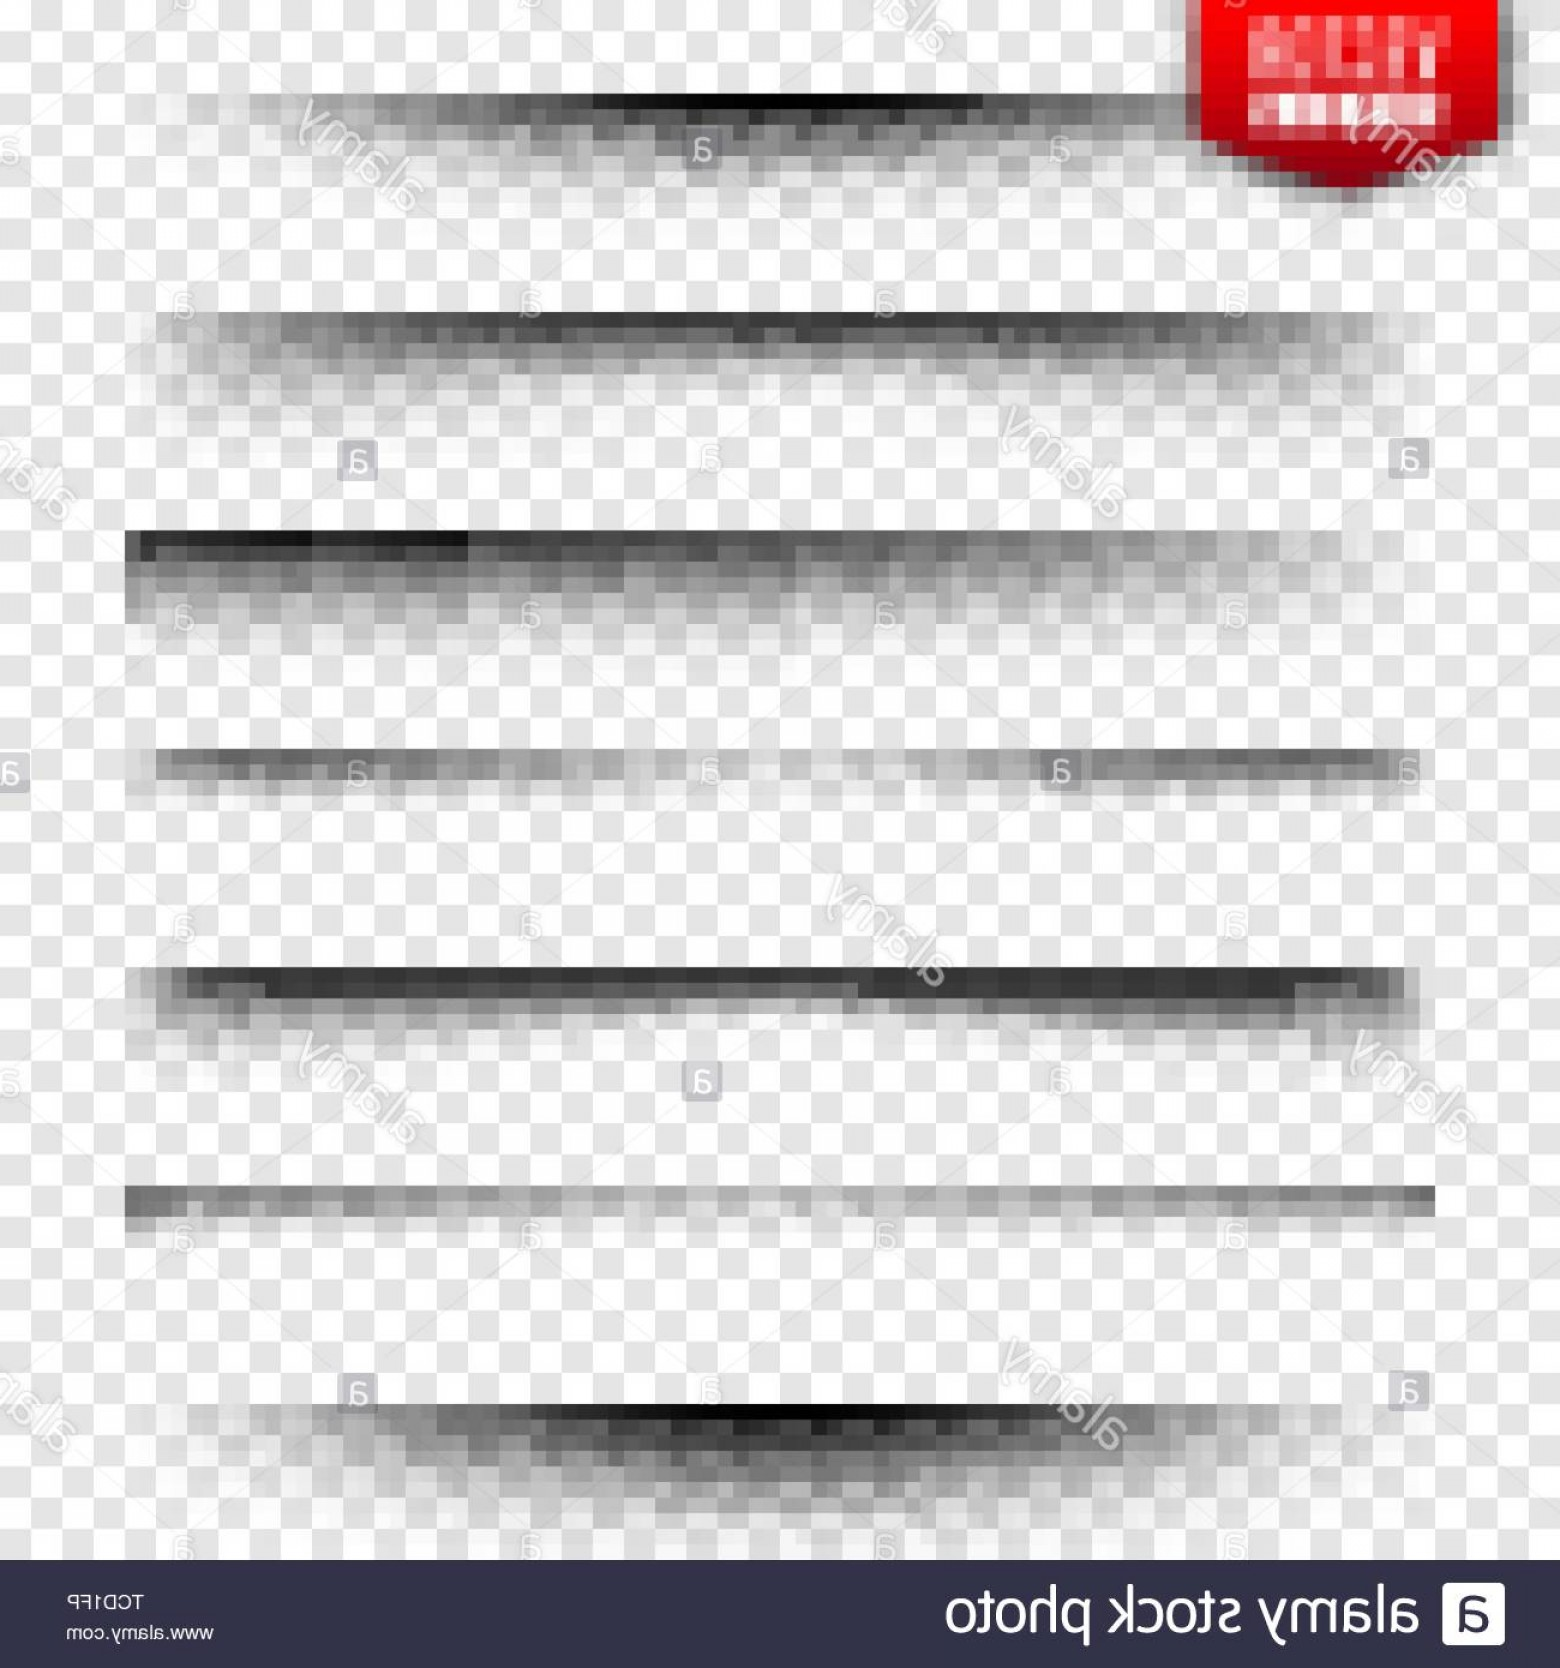 Vector Line Dividers Transparent Backgrounds: Vector Shadows Set Page Dividers On Transparent Background Realistic Isolated Shadow Vector Illustration Image